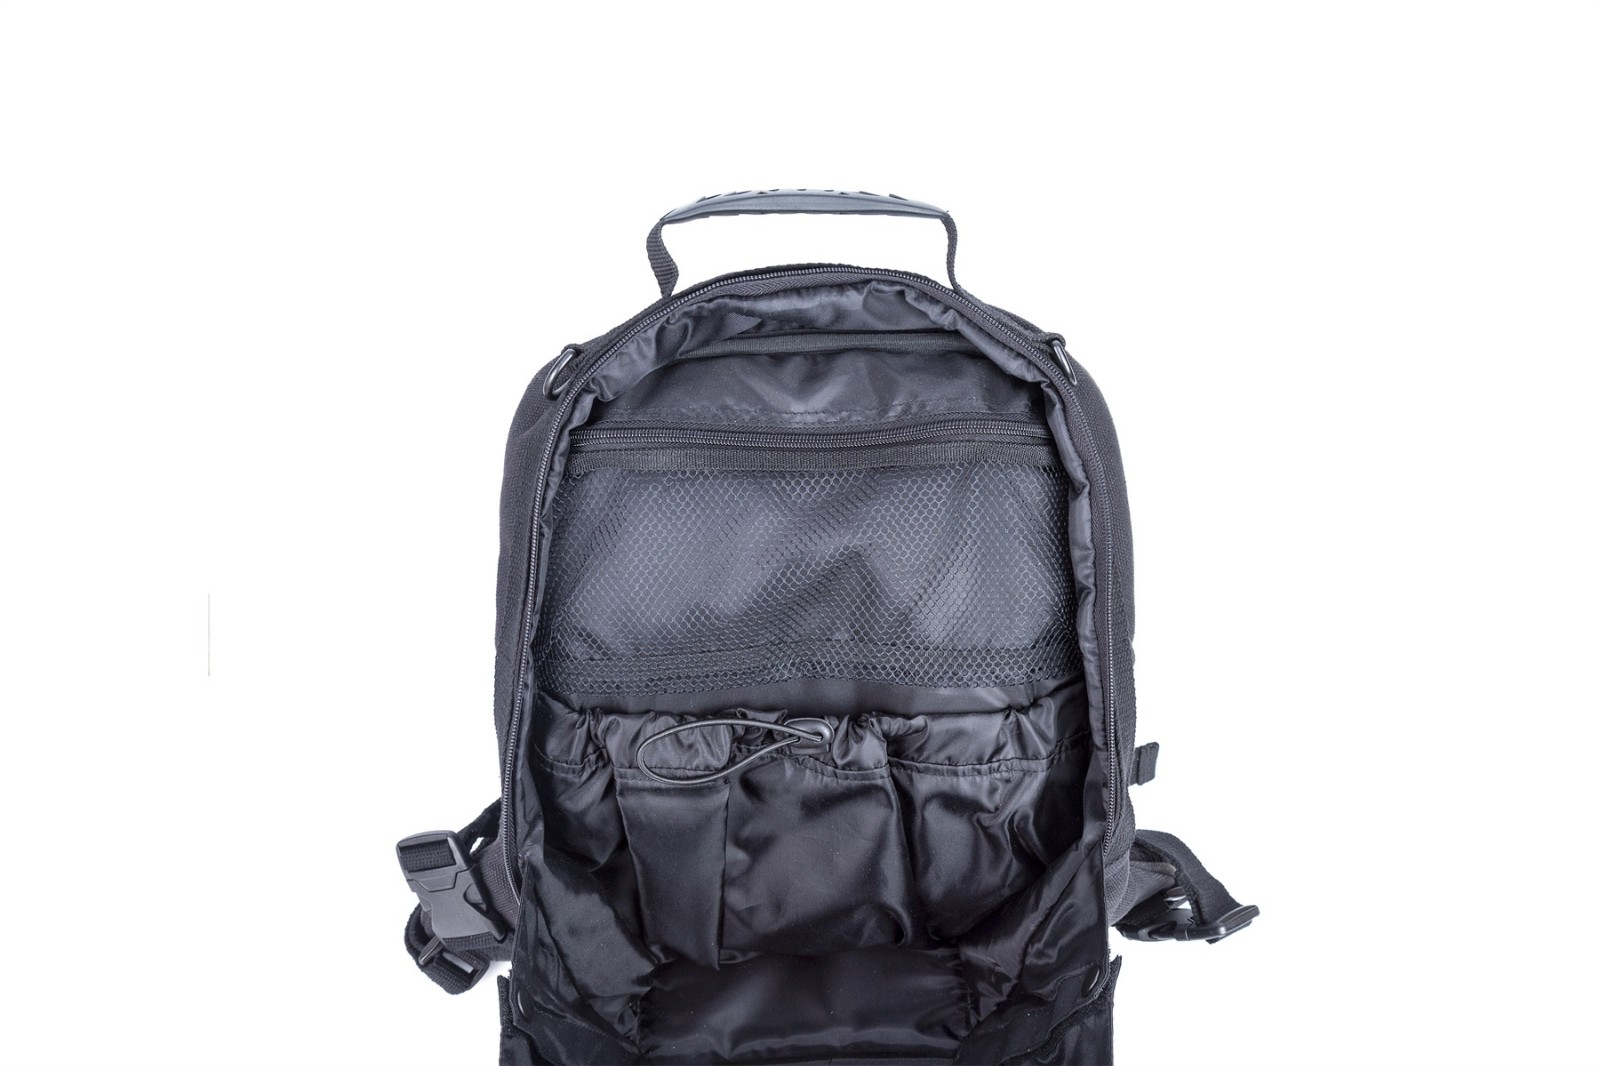 GF bags-Manufacturer Of Military Style Backpack And Bag Tactical - GF Bags-7